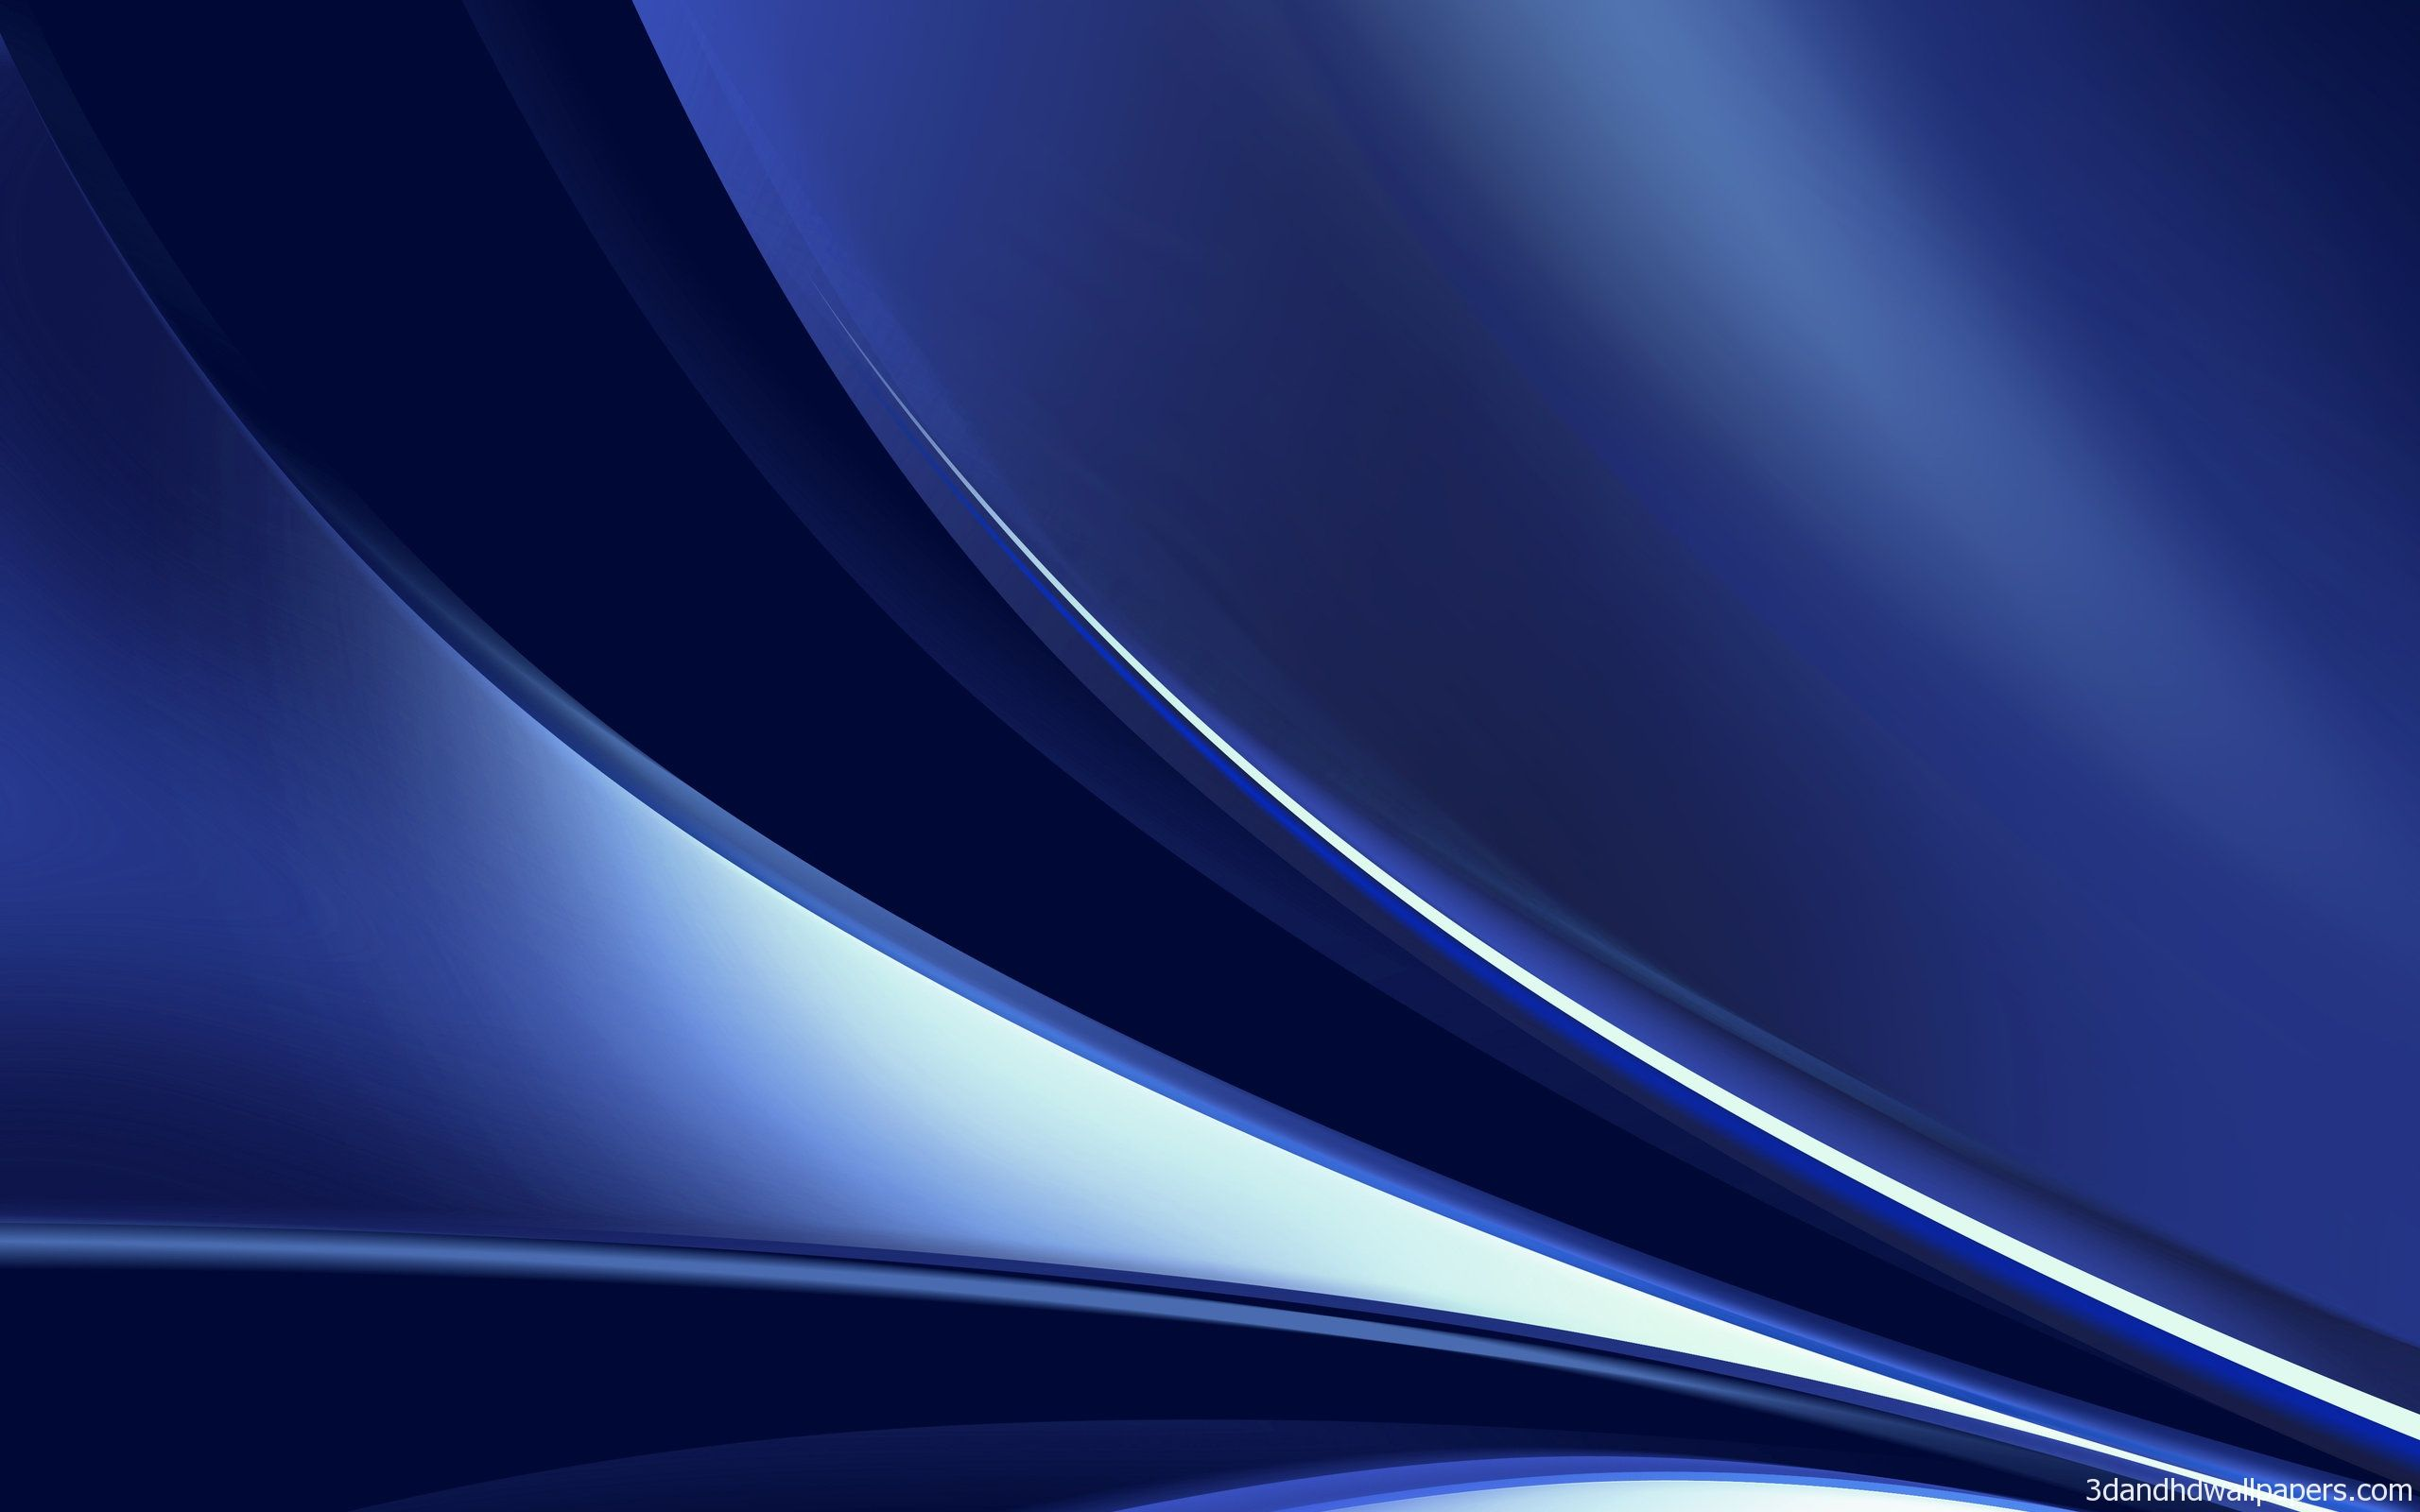 Black Background Blue White Colour Shadow Hd Wallpaper Dark Blue White Background 385280 Hd Wallpaper Backgrounds Download